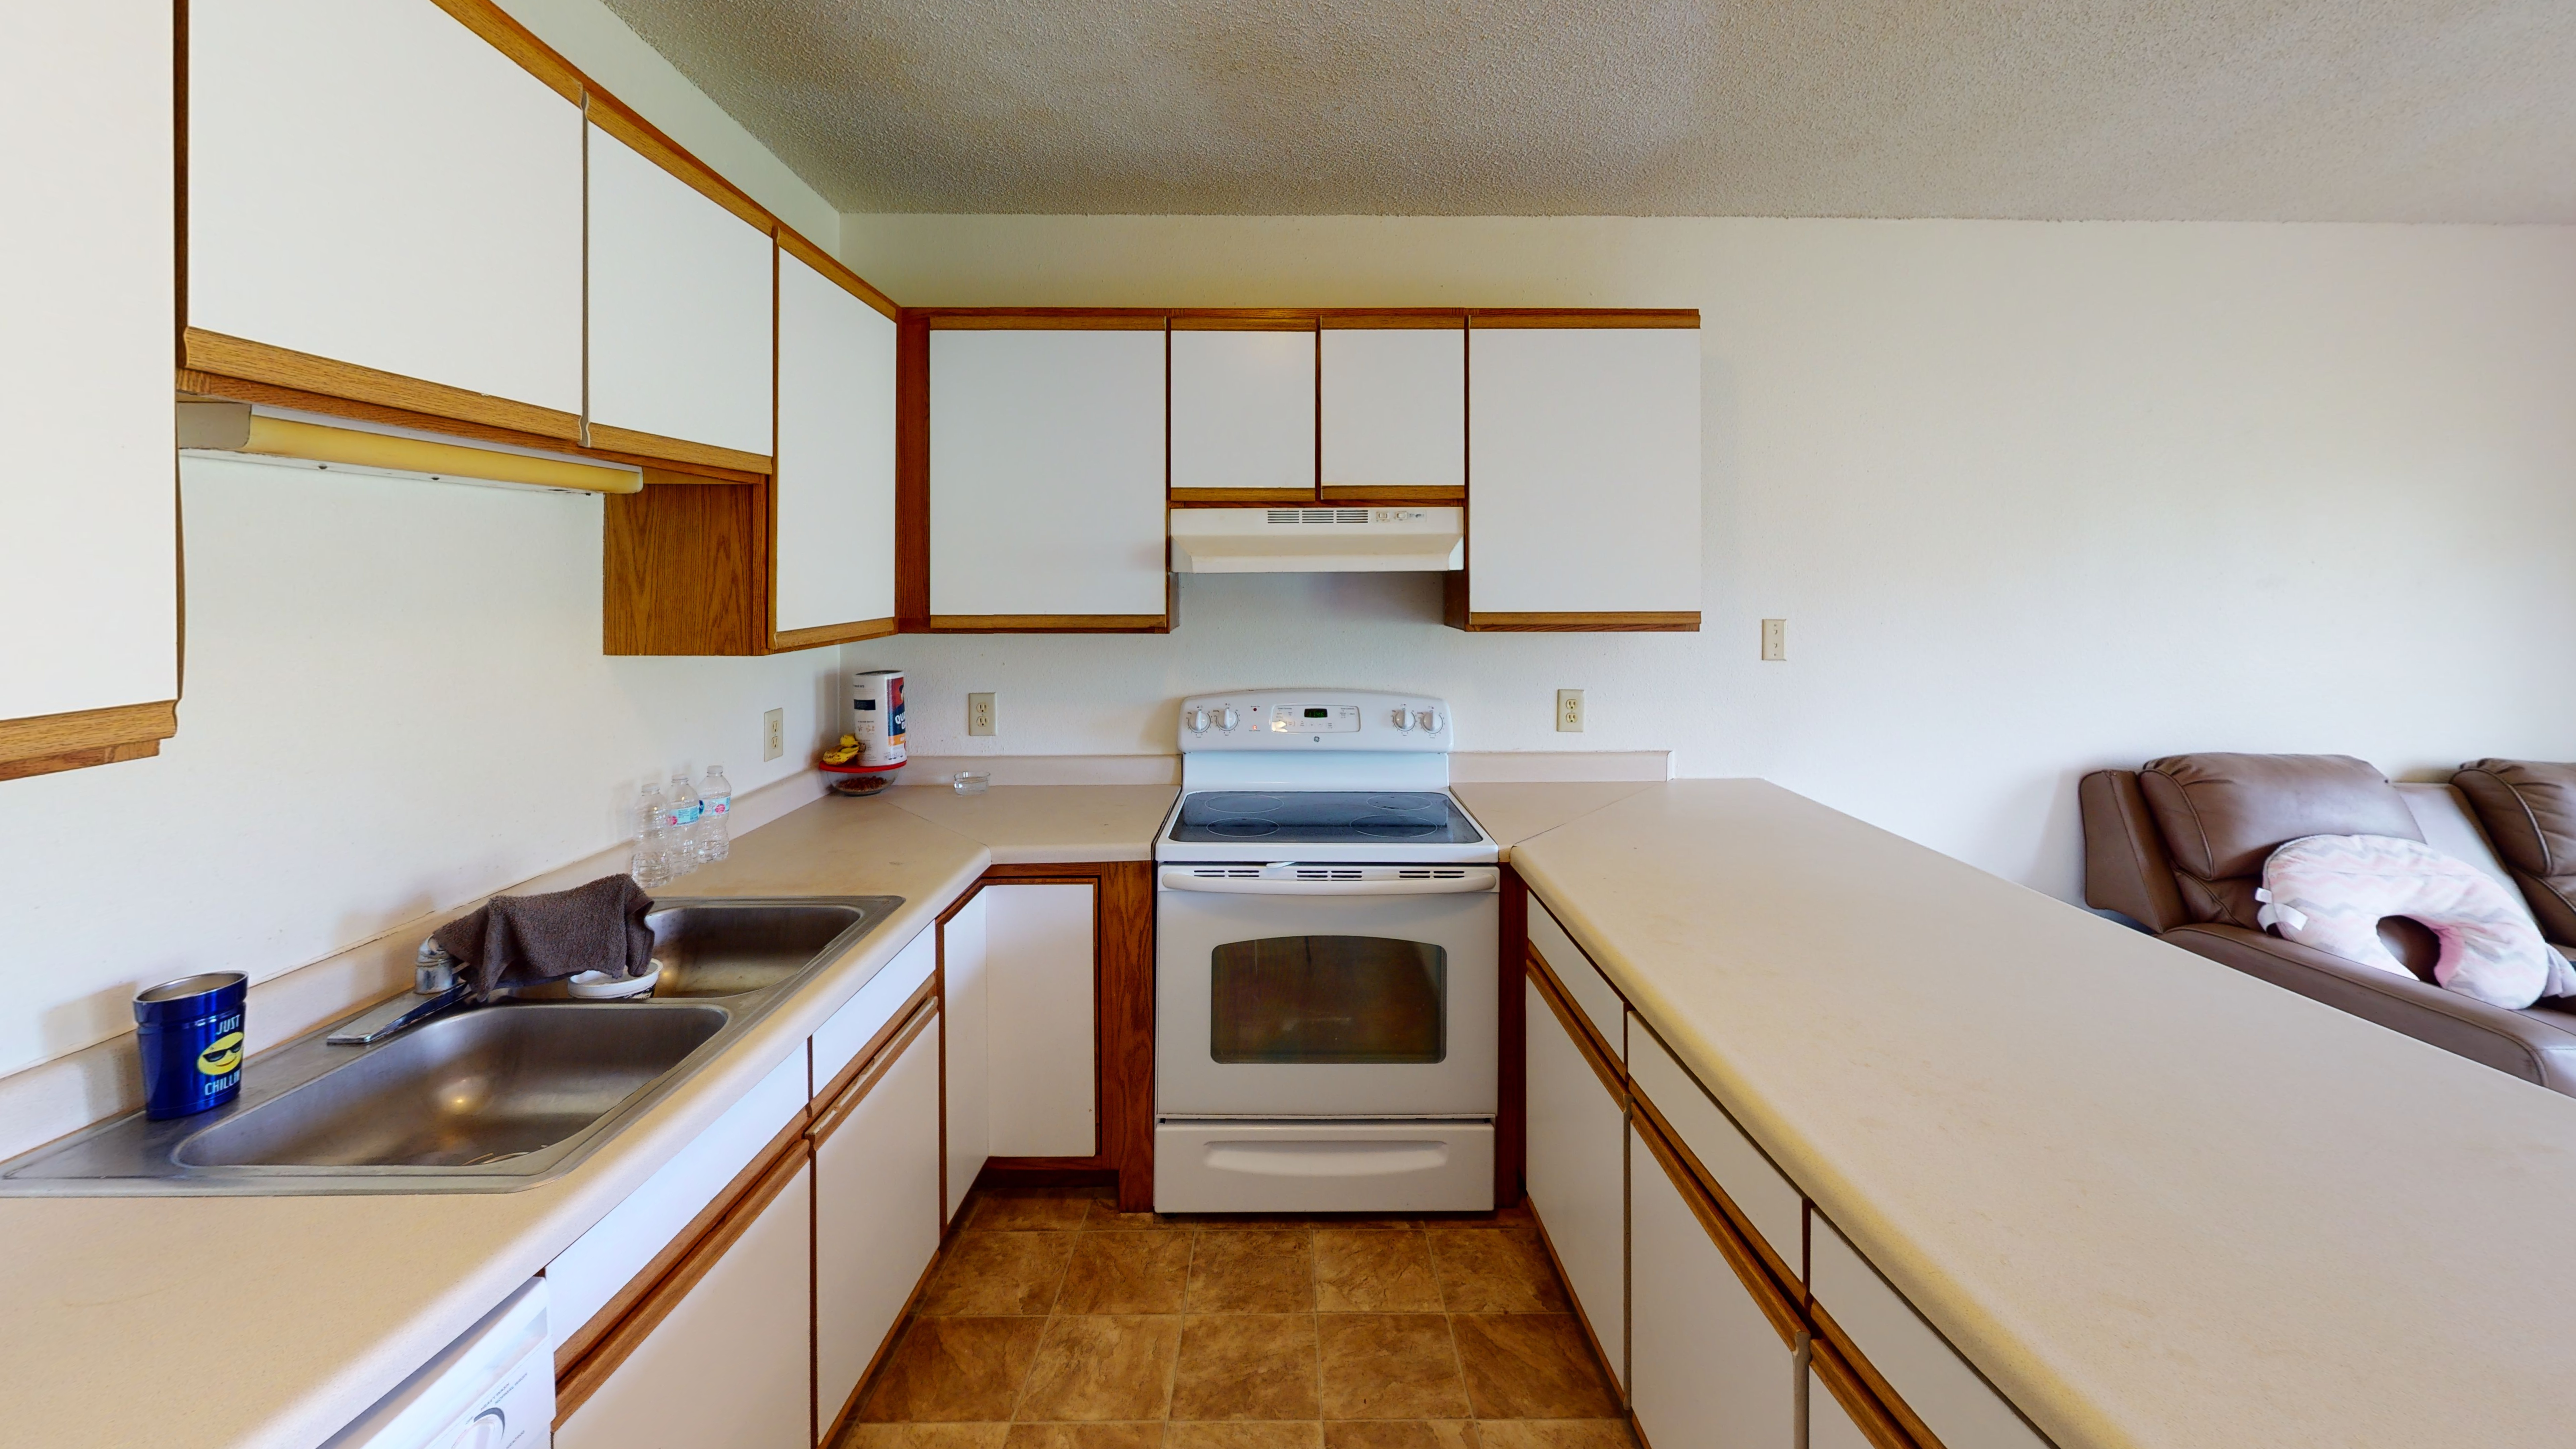 Townhomes-of-Pelican-Rapids-2-Bedroom-Ki